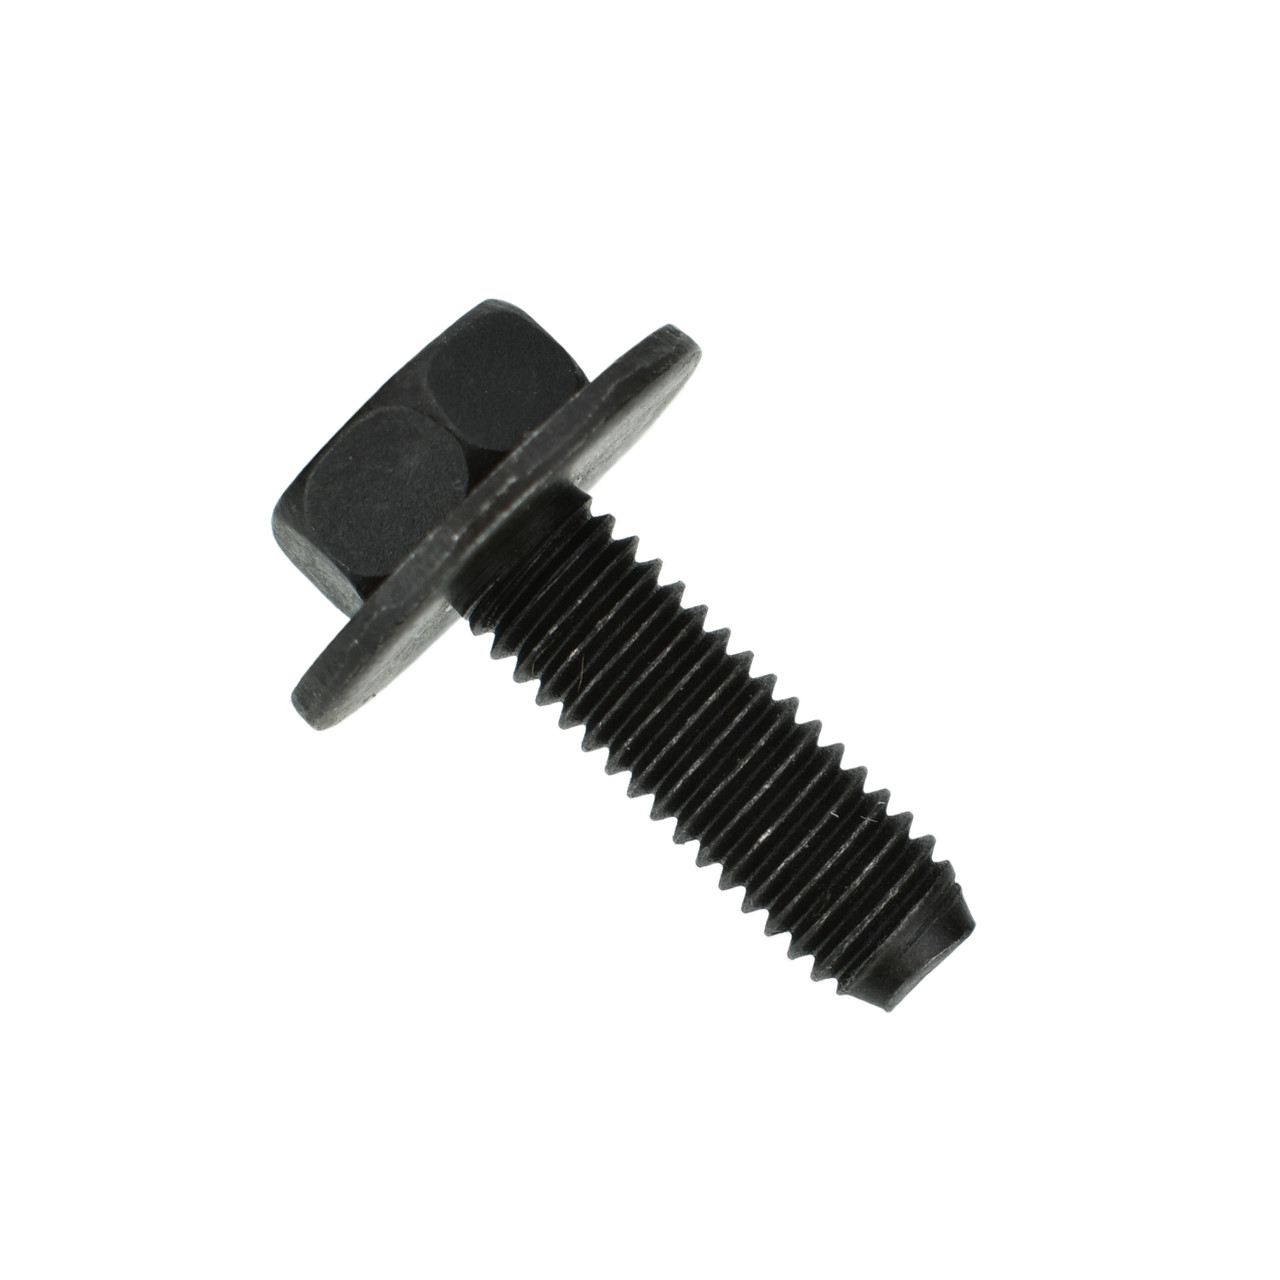 M6 Hex Bolt -  Interchanges: Disco 9889 / Auveco 12067 / GM 11504570